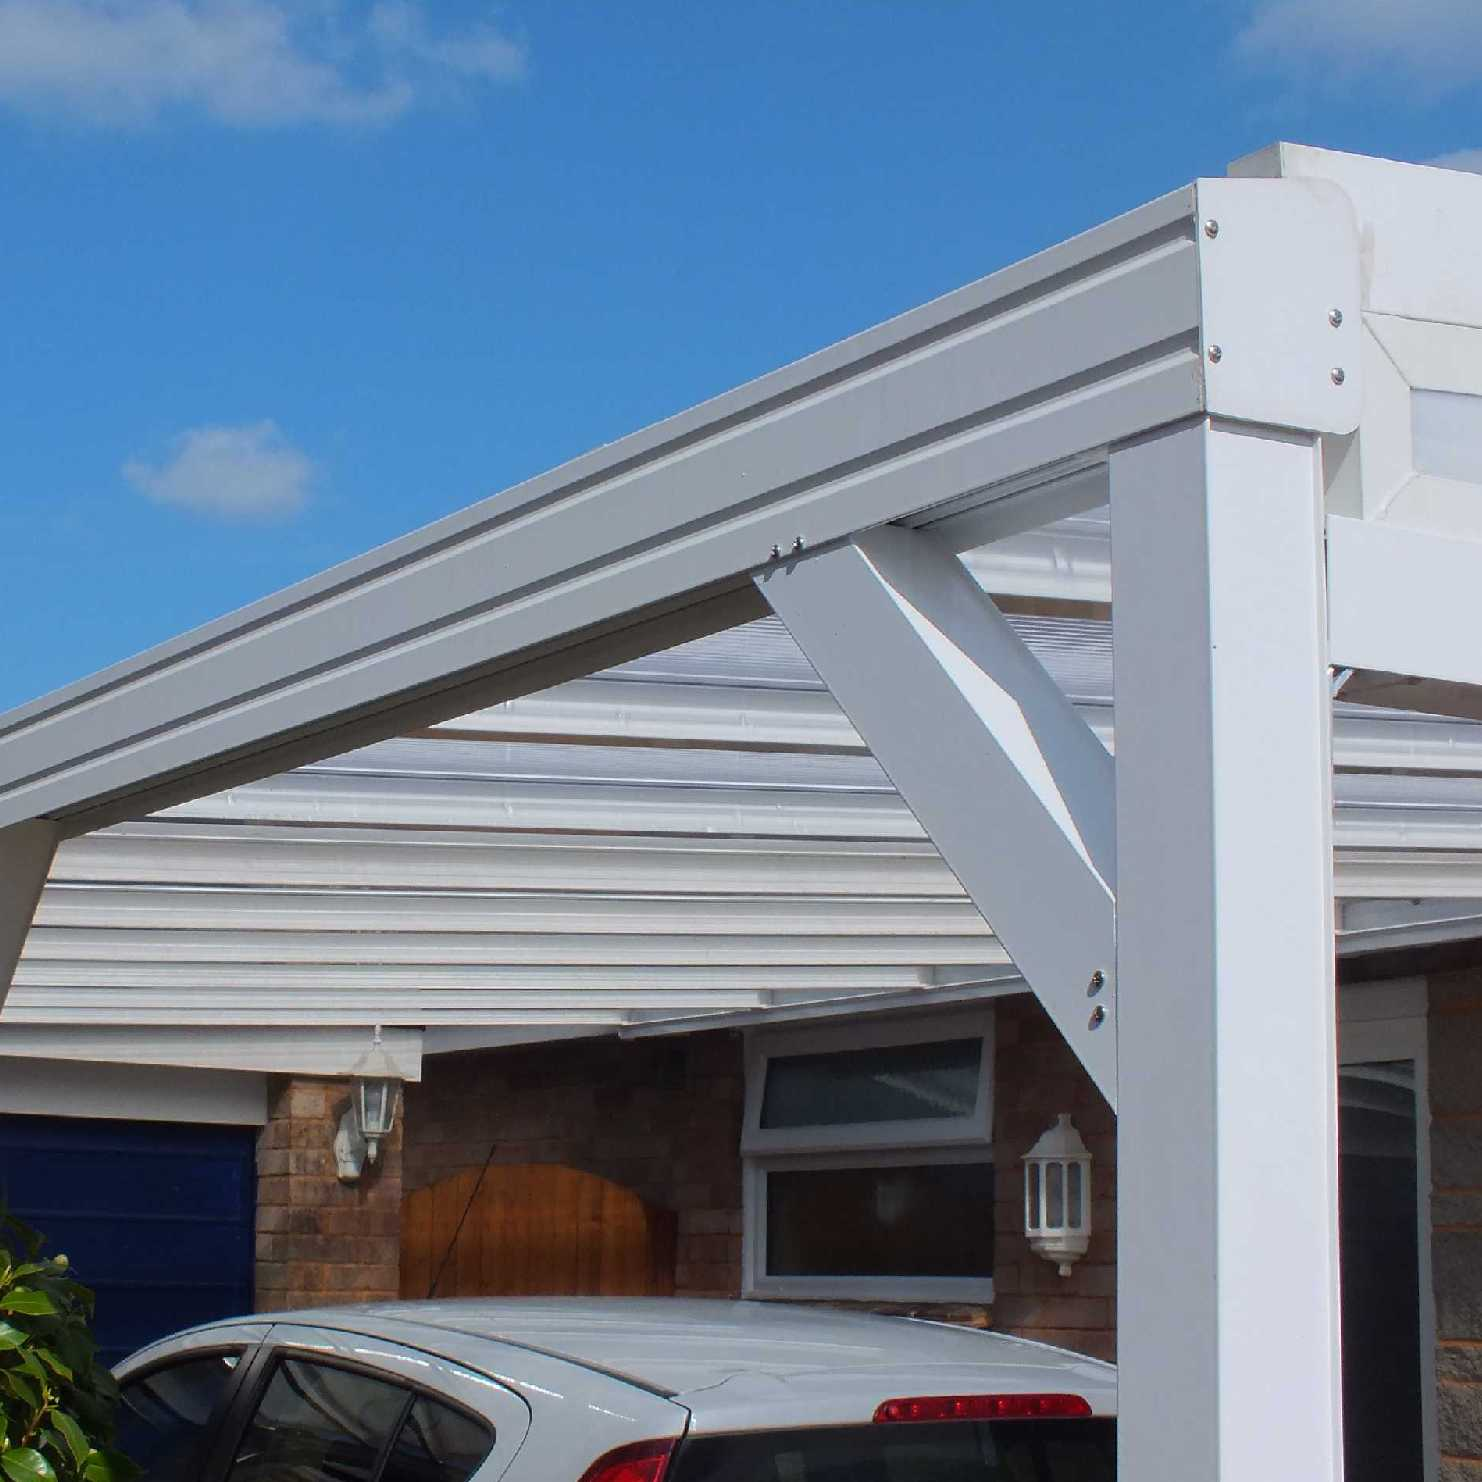 Buy Omega Smart White Lean-To Canopy with 16mm Polycarbonate Glazing - 8.4m (W) x 4.5m (P), (4) Supporting Posts online today